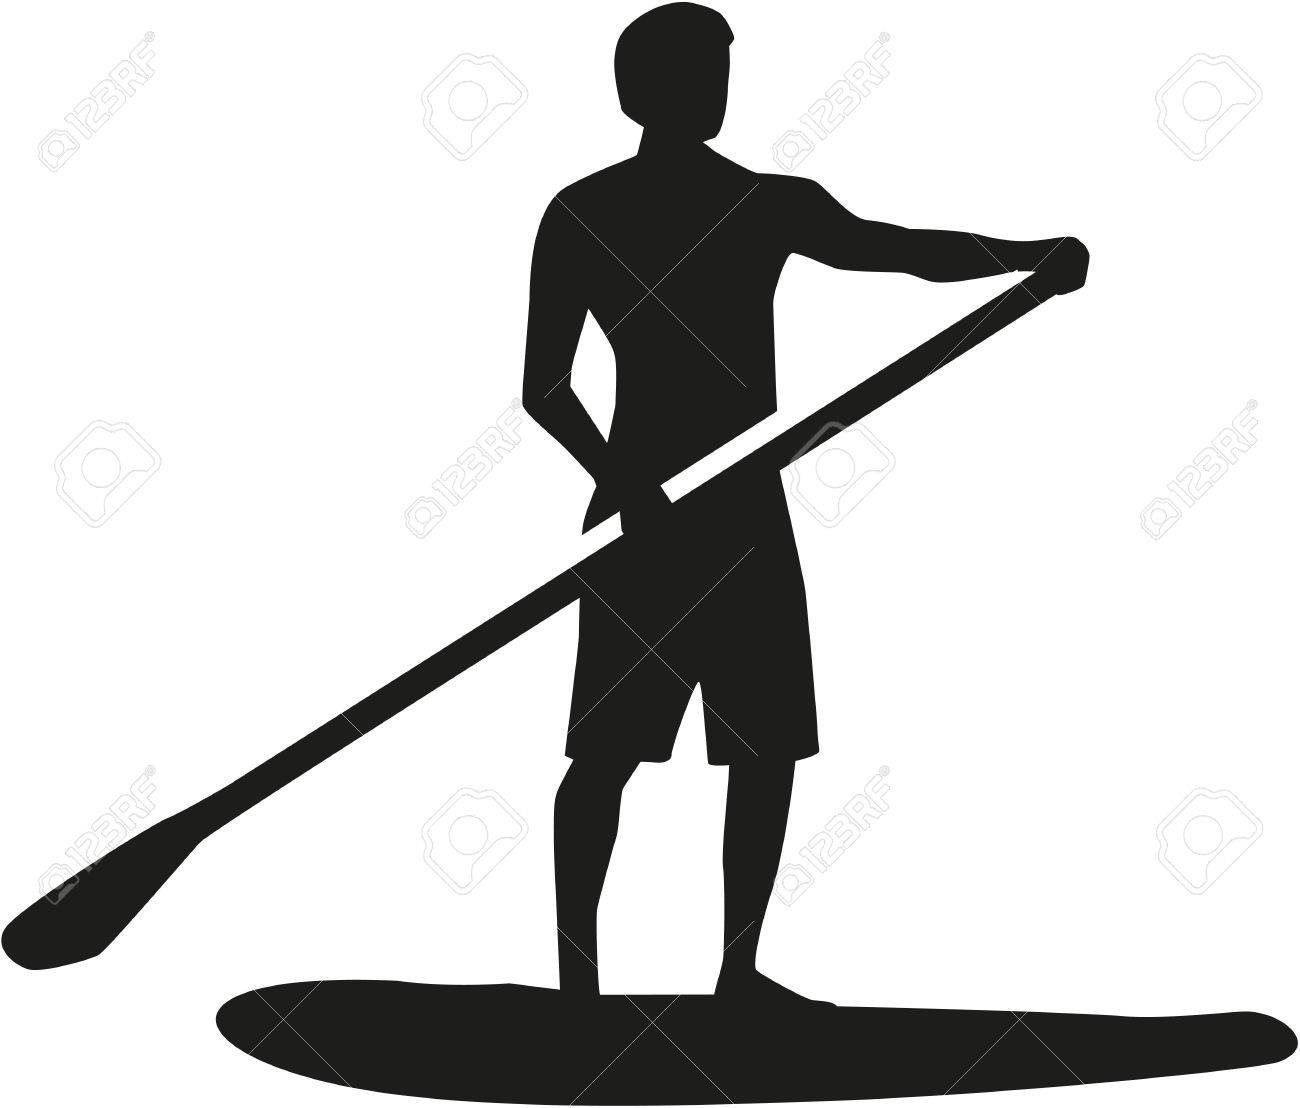 Stand up paddling silhouette - 52018936